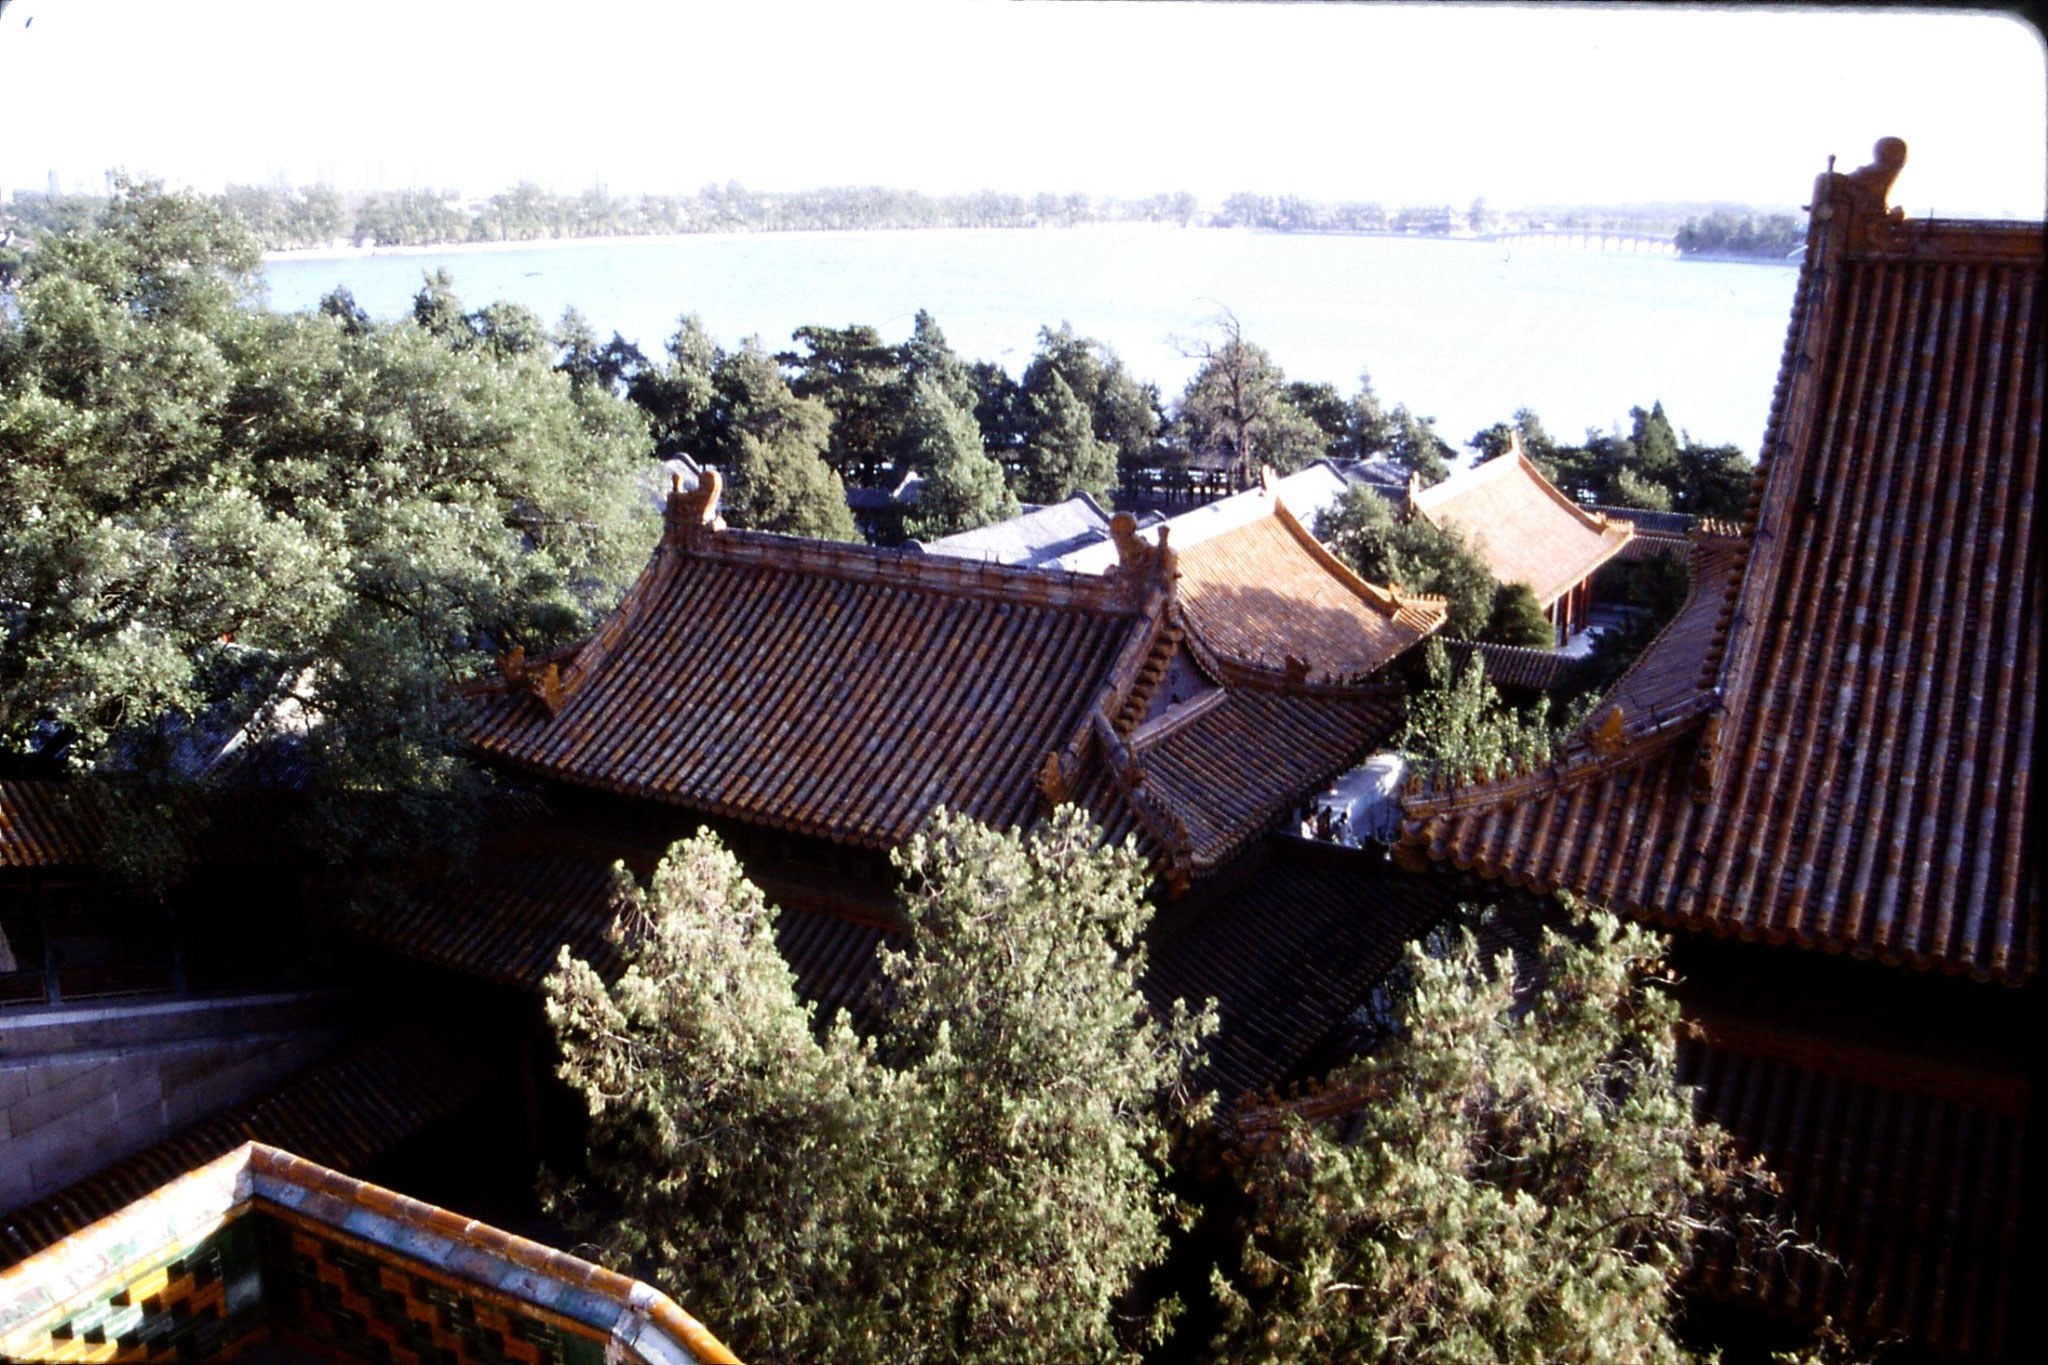 1/11/1988: 11: Summer Palace, view from Hill of Longevity